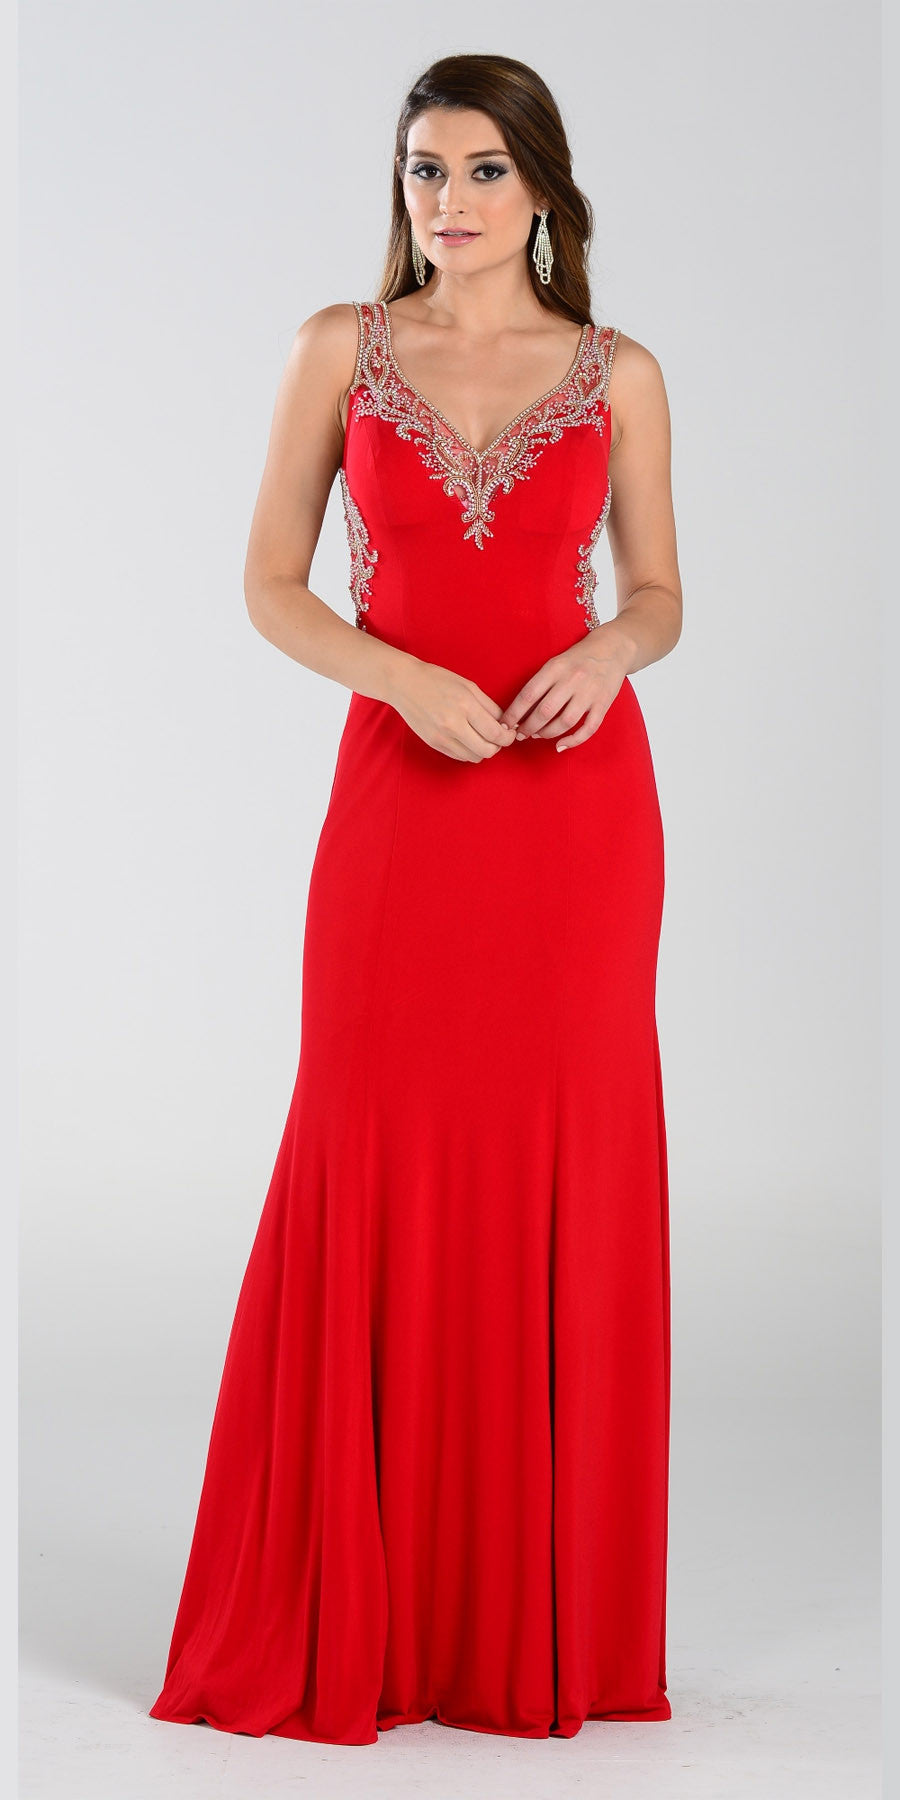 ON SPECIAL LIMITED STOCK - Poly USA 7356 Special Occasion Red Gown Sheath Floor Length